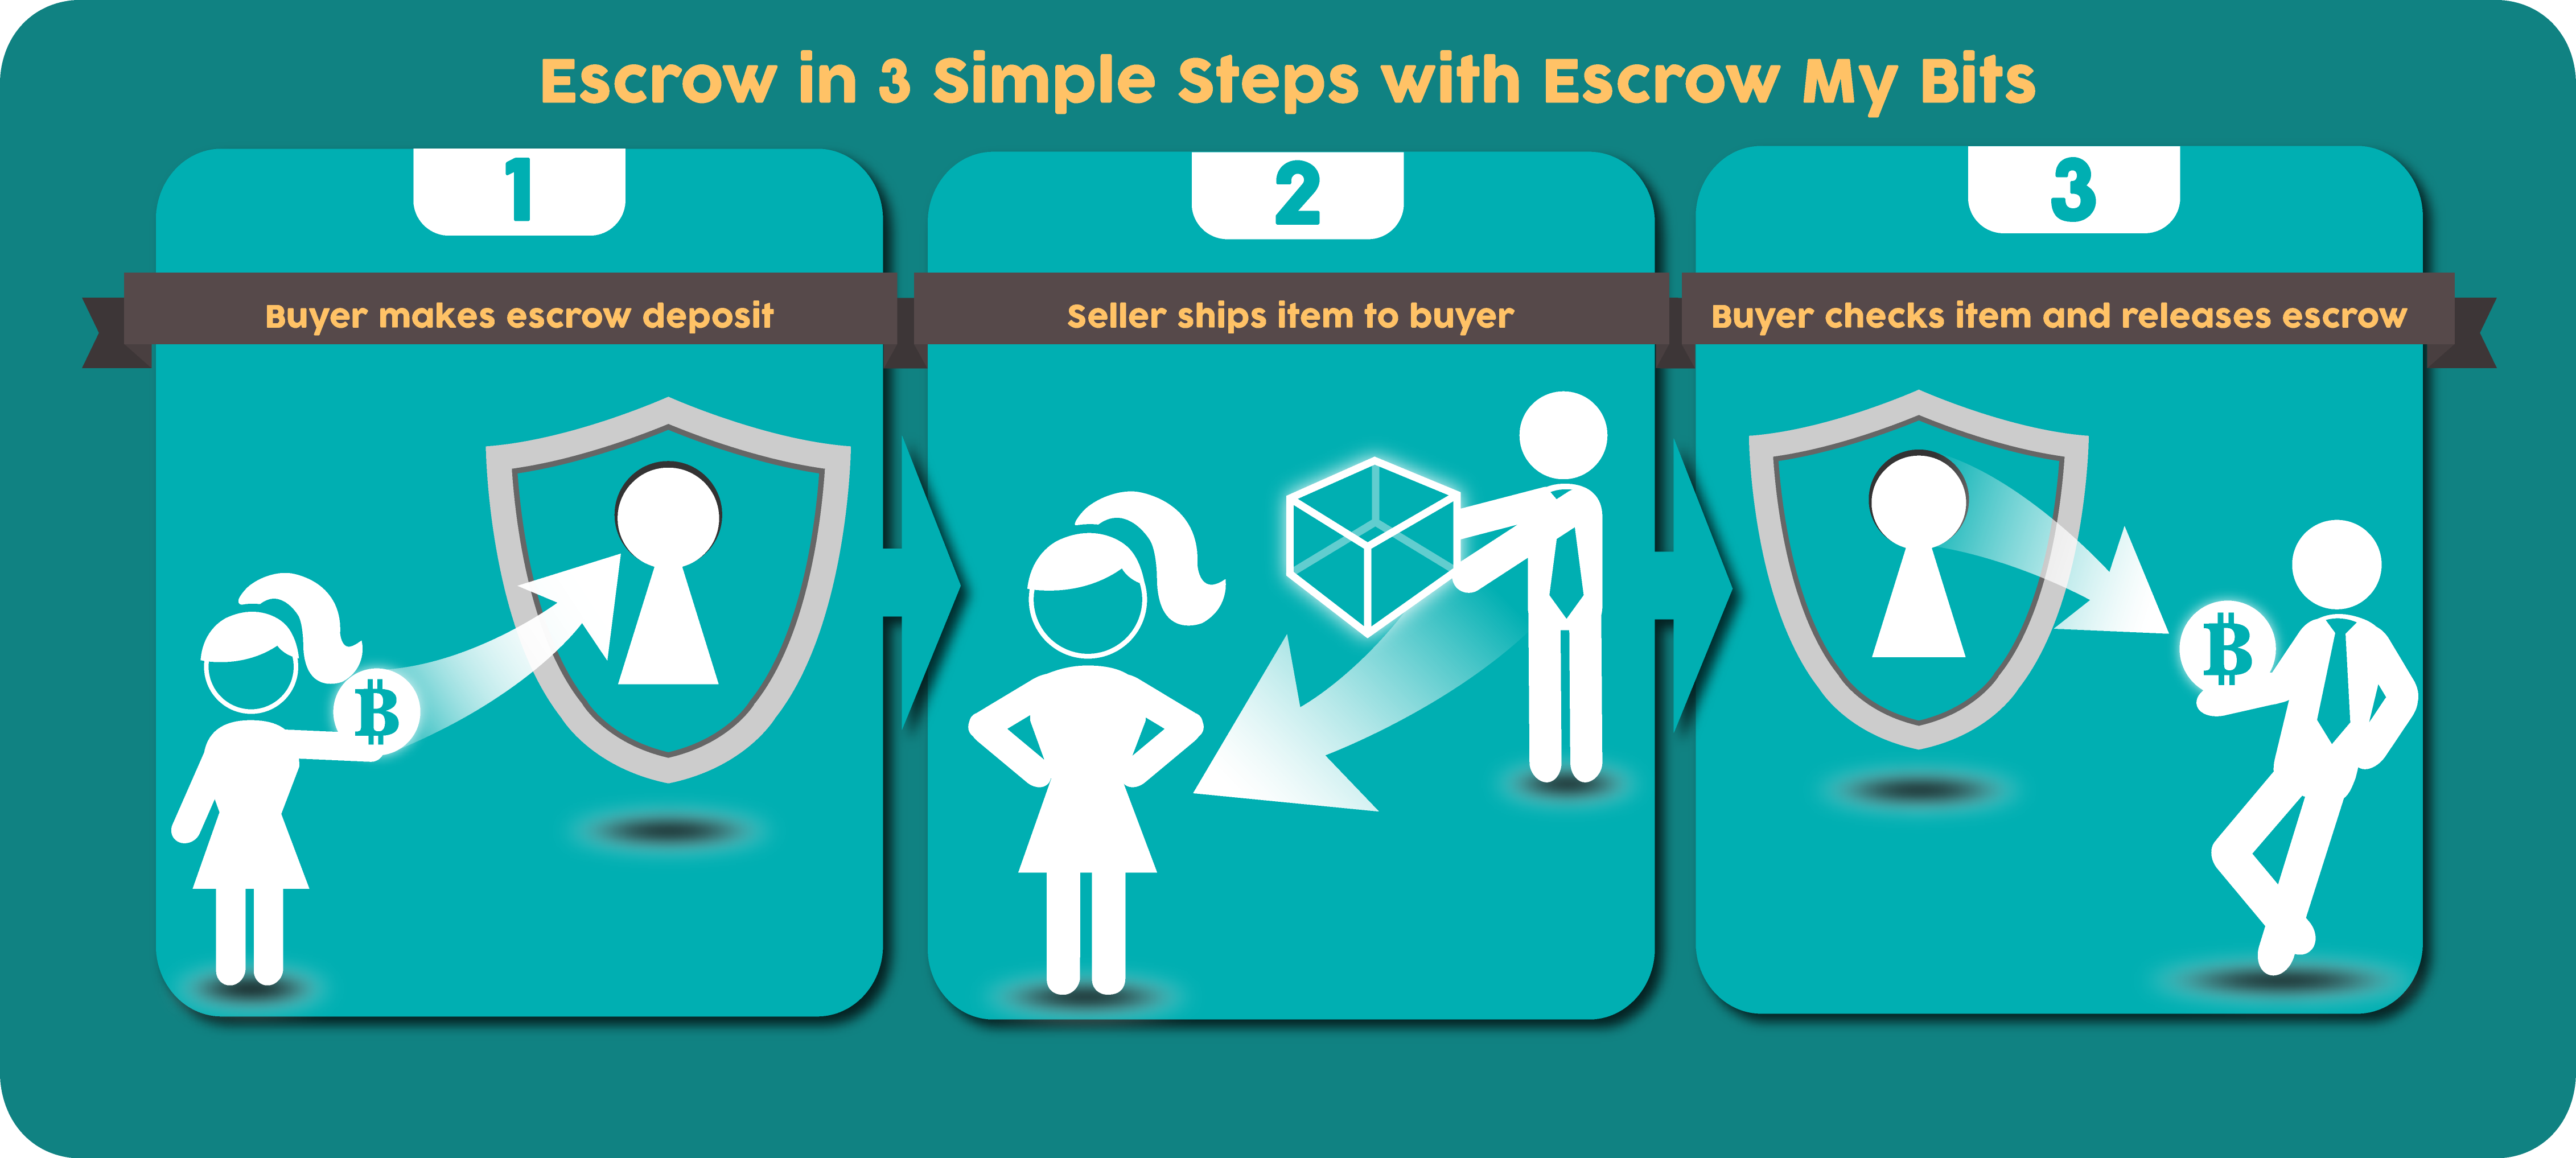 Escrow my Bits screenshot